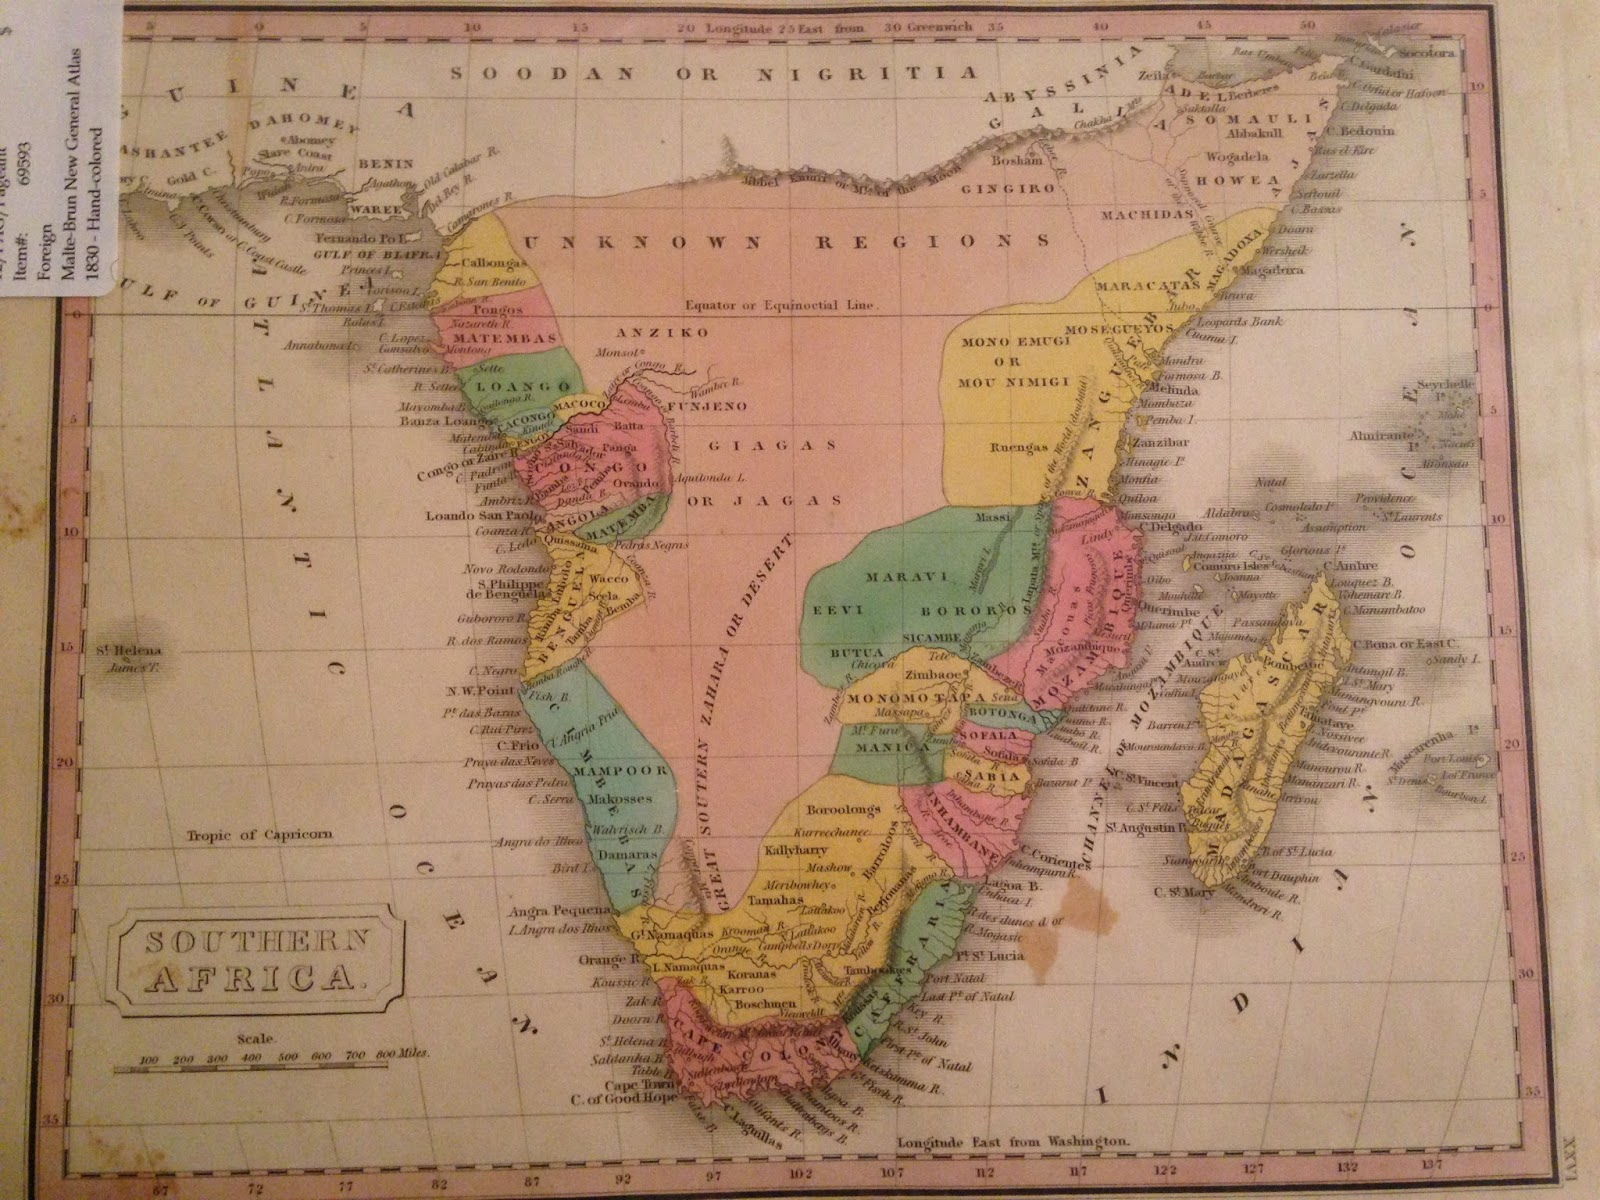 1830 malte brun map of southern africa showing south africa the cape colony